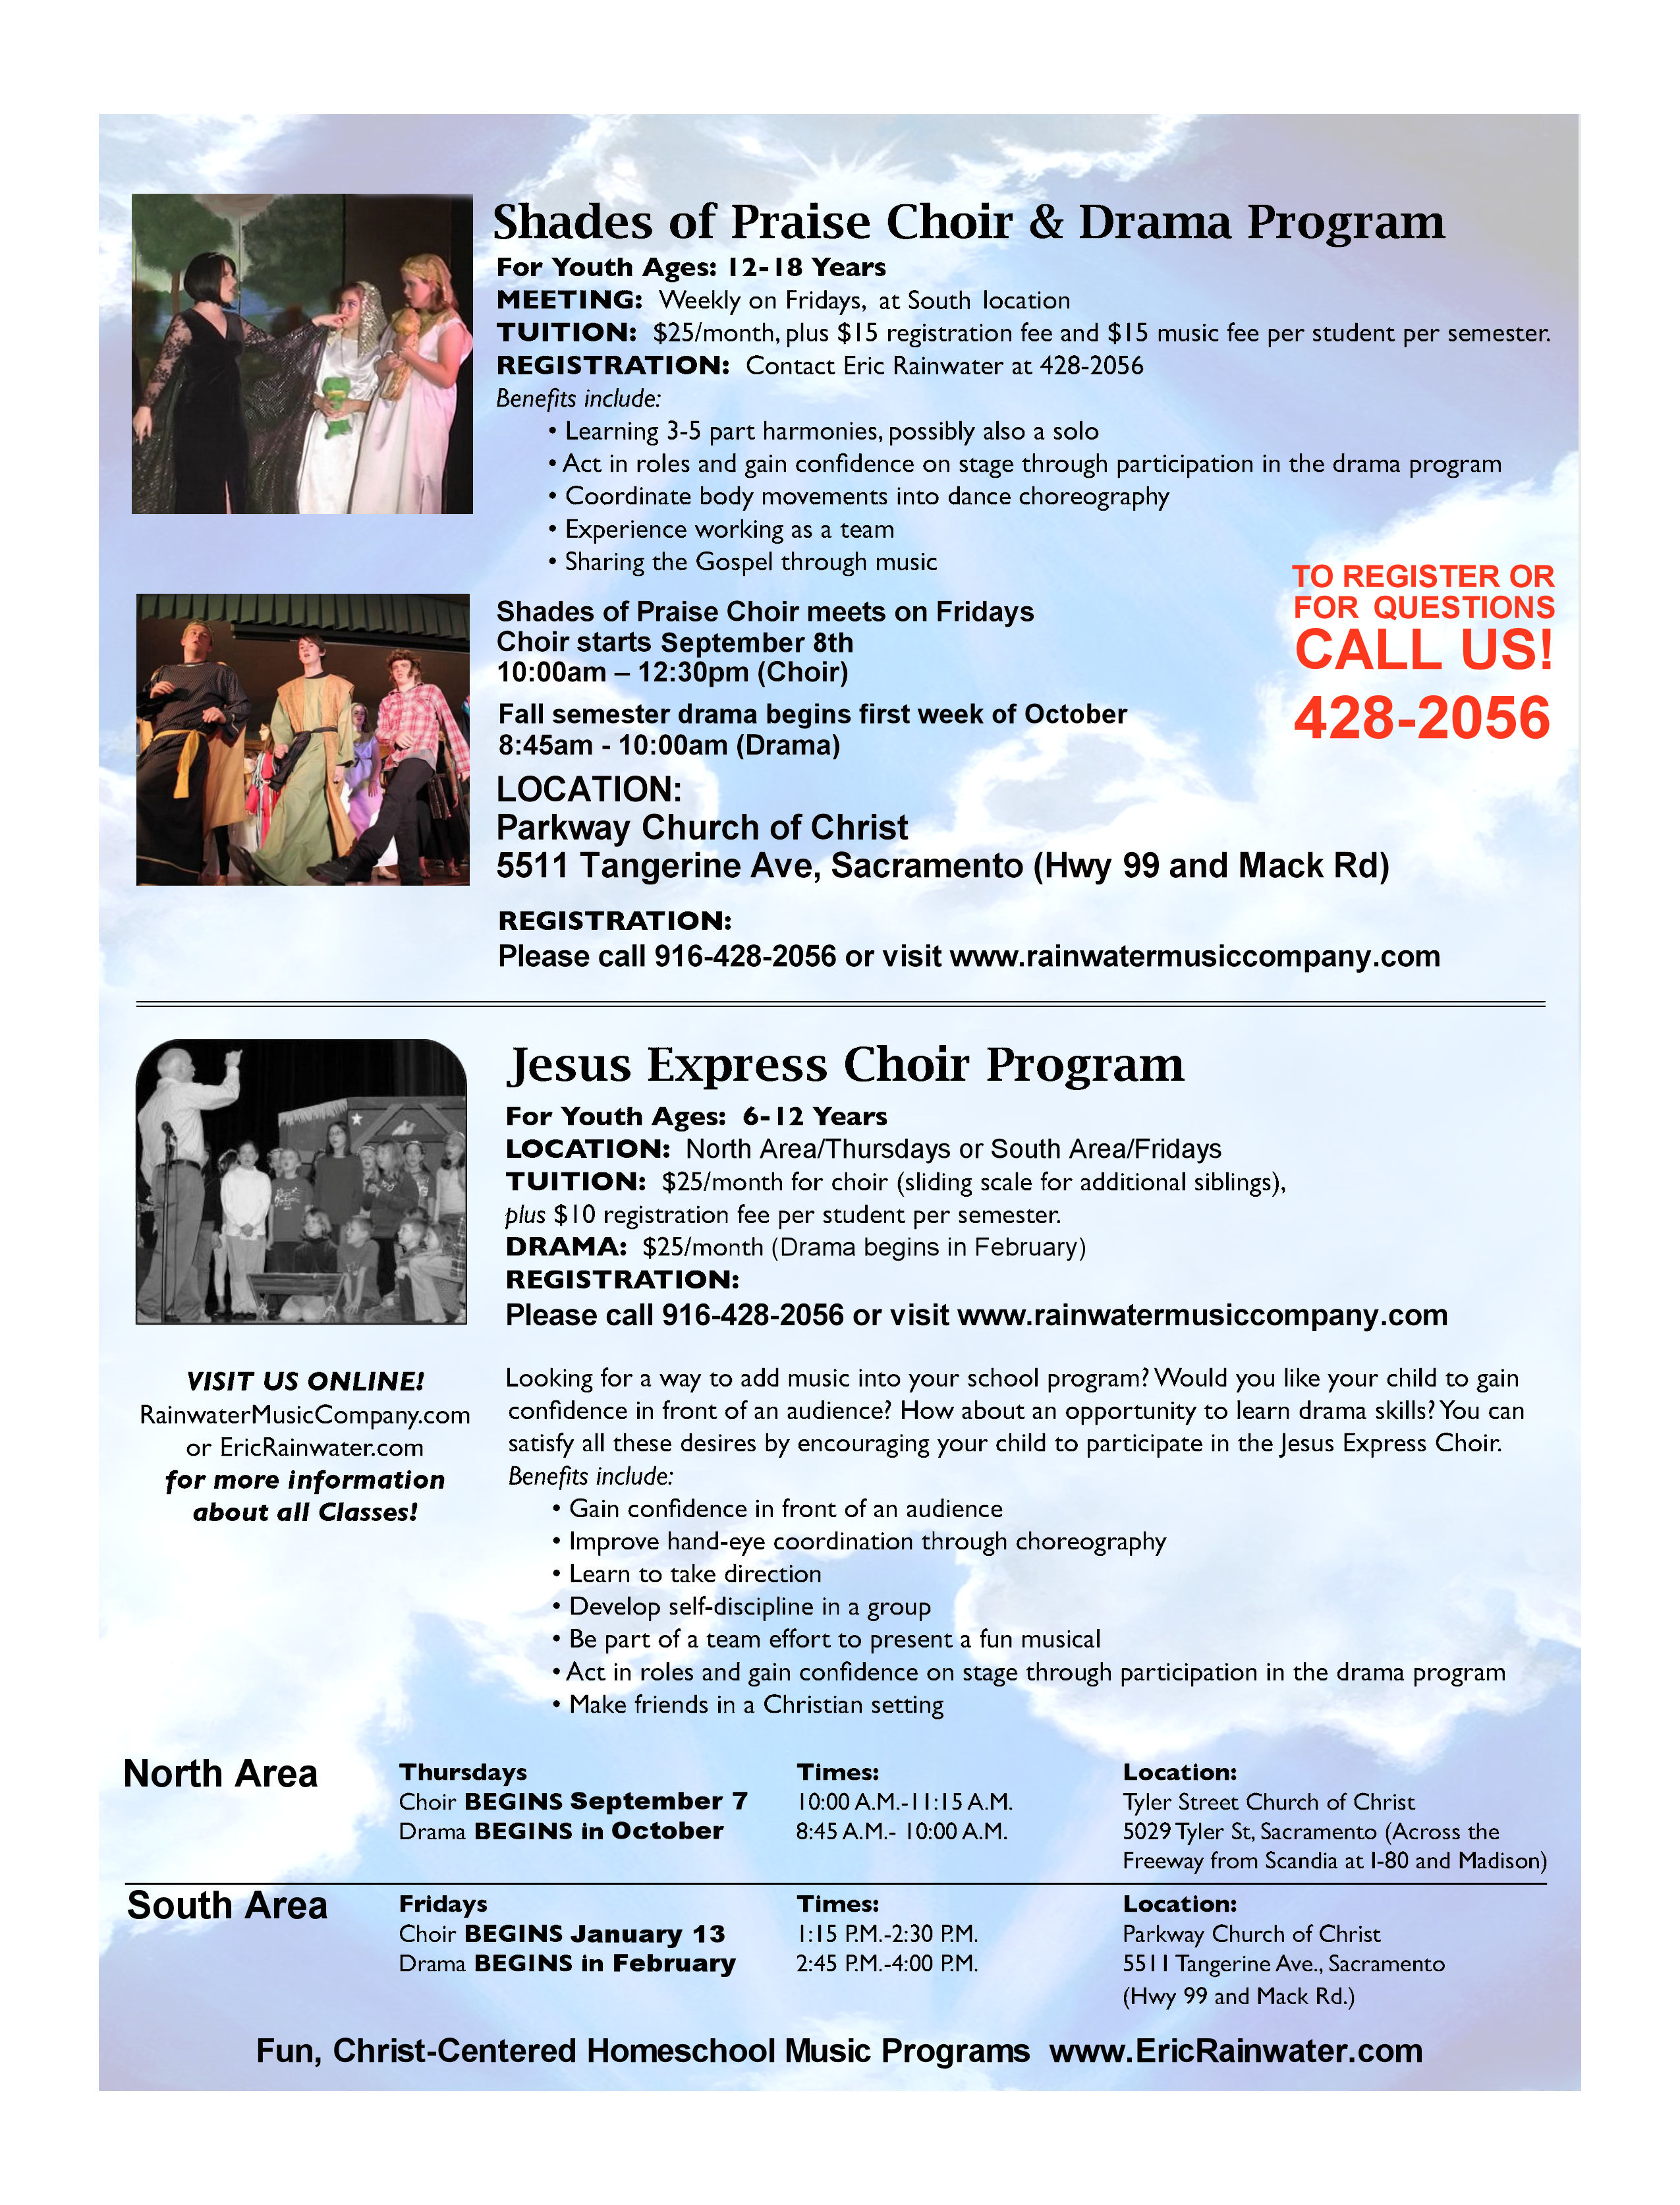 Rainwater Homeschool Music Programs: CHOIR & DRAMA